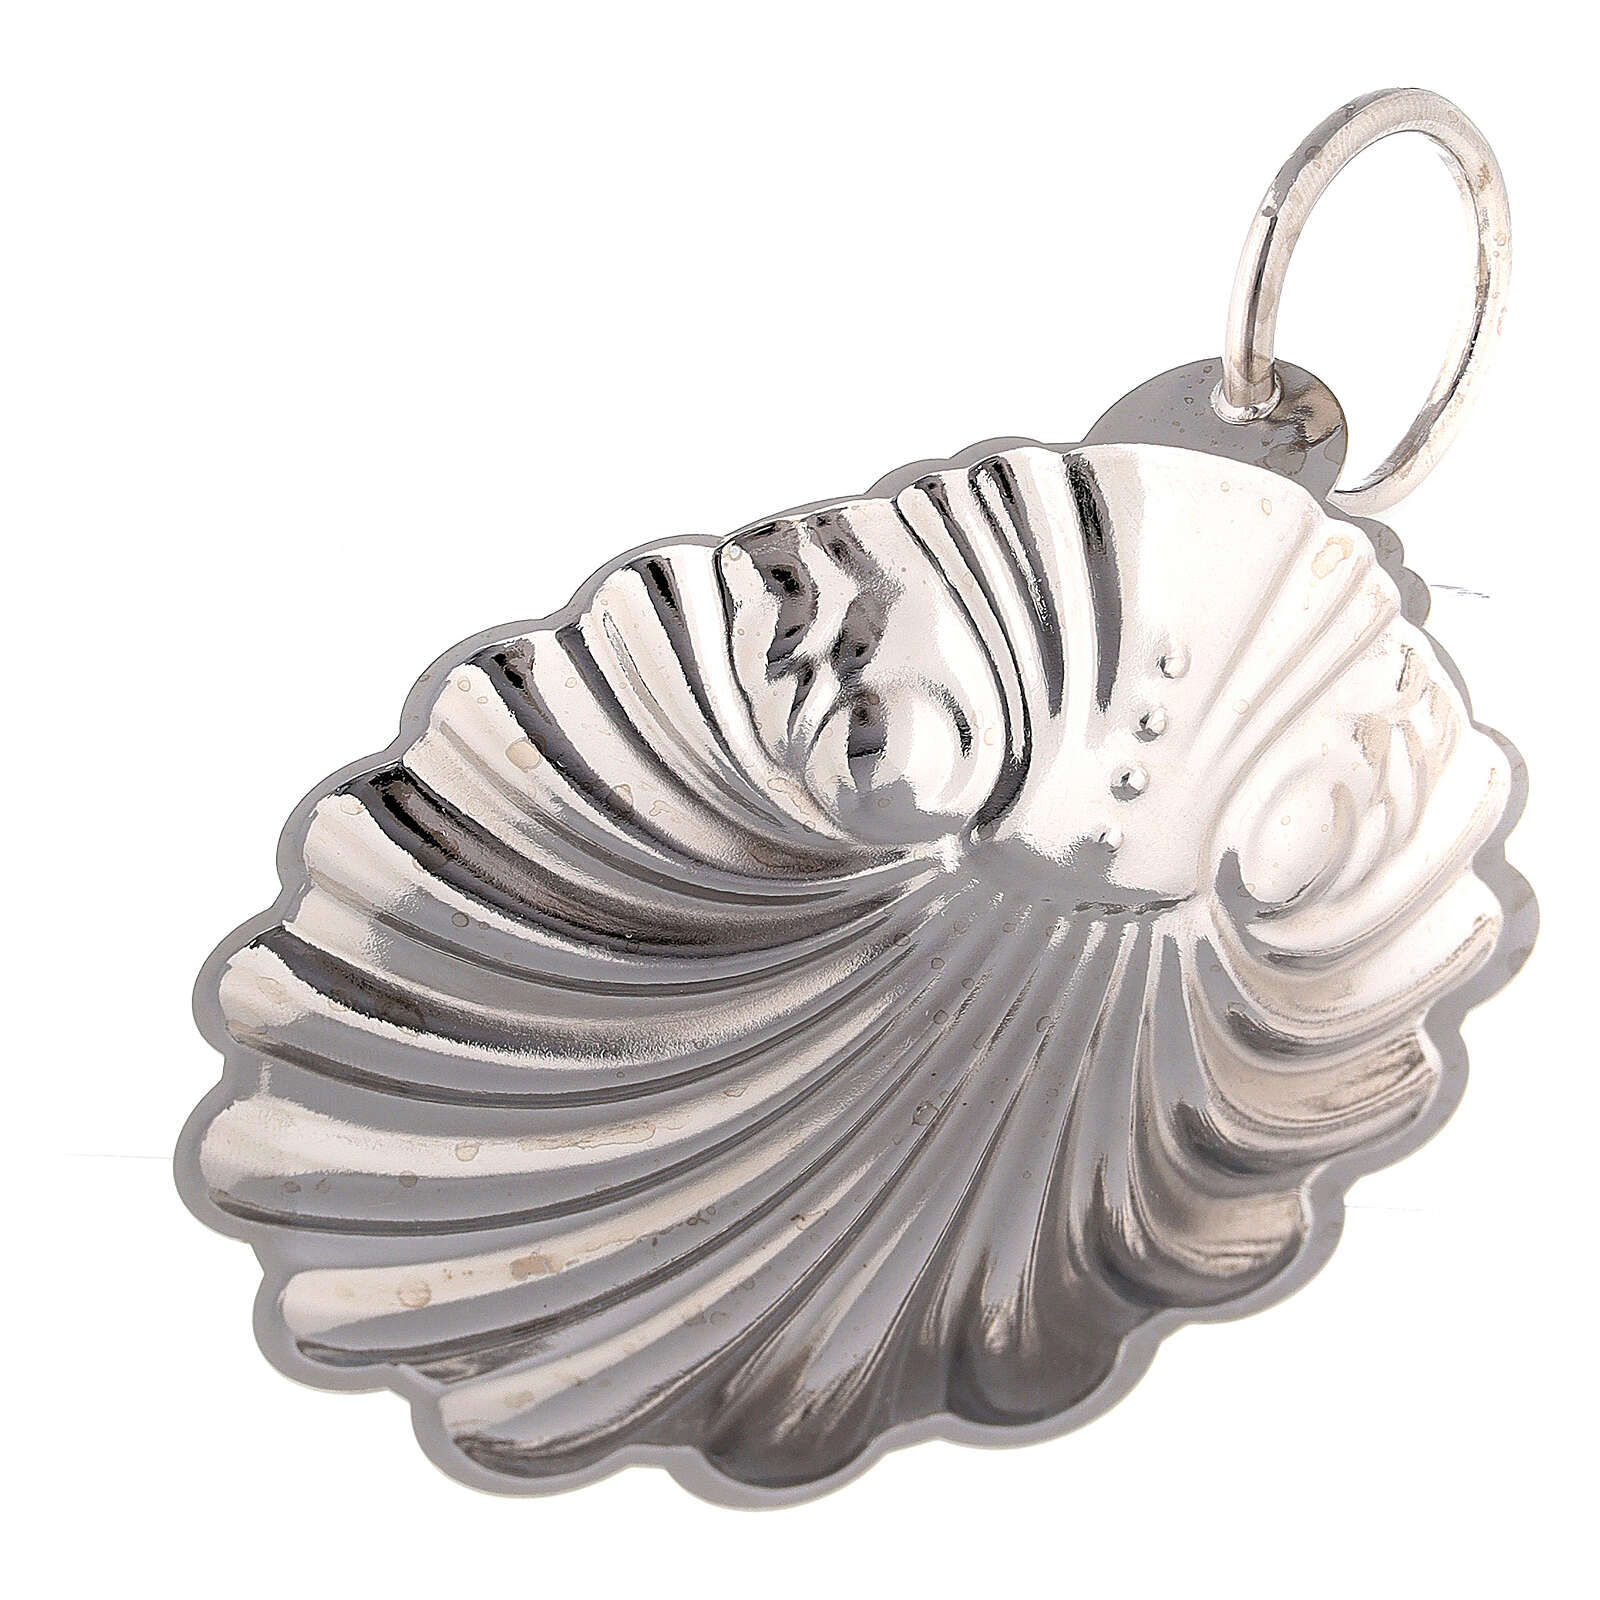 Baptismal shell of silver-plated brass 3 1/2 in 3